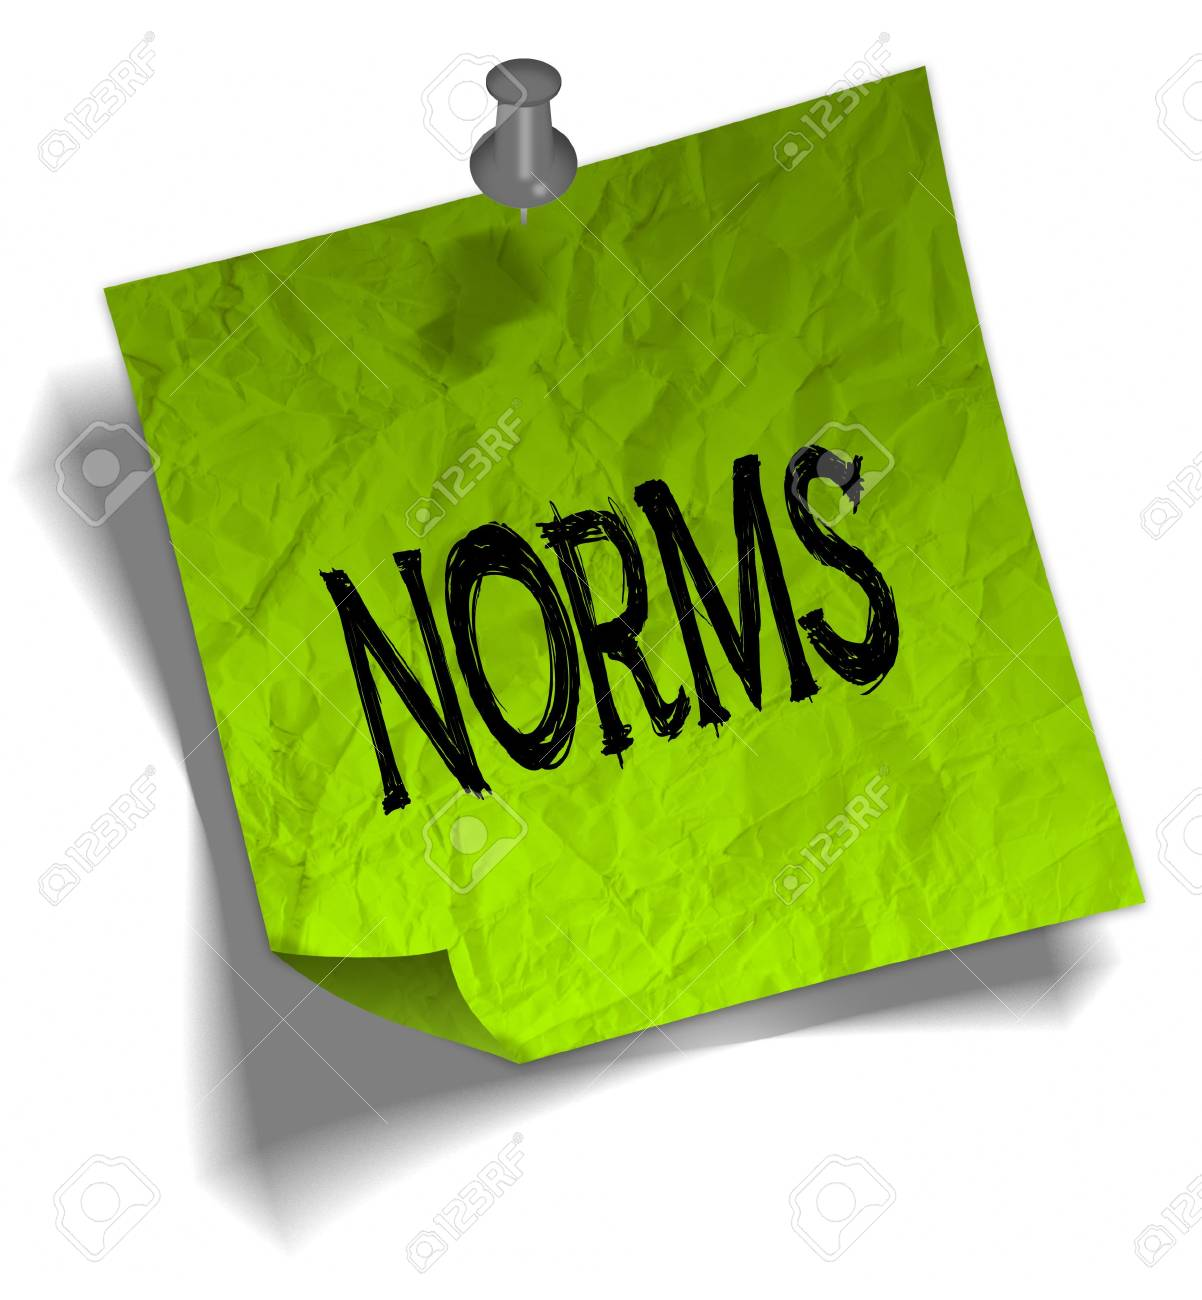 Image result for norms